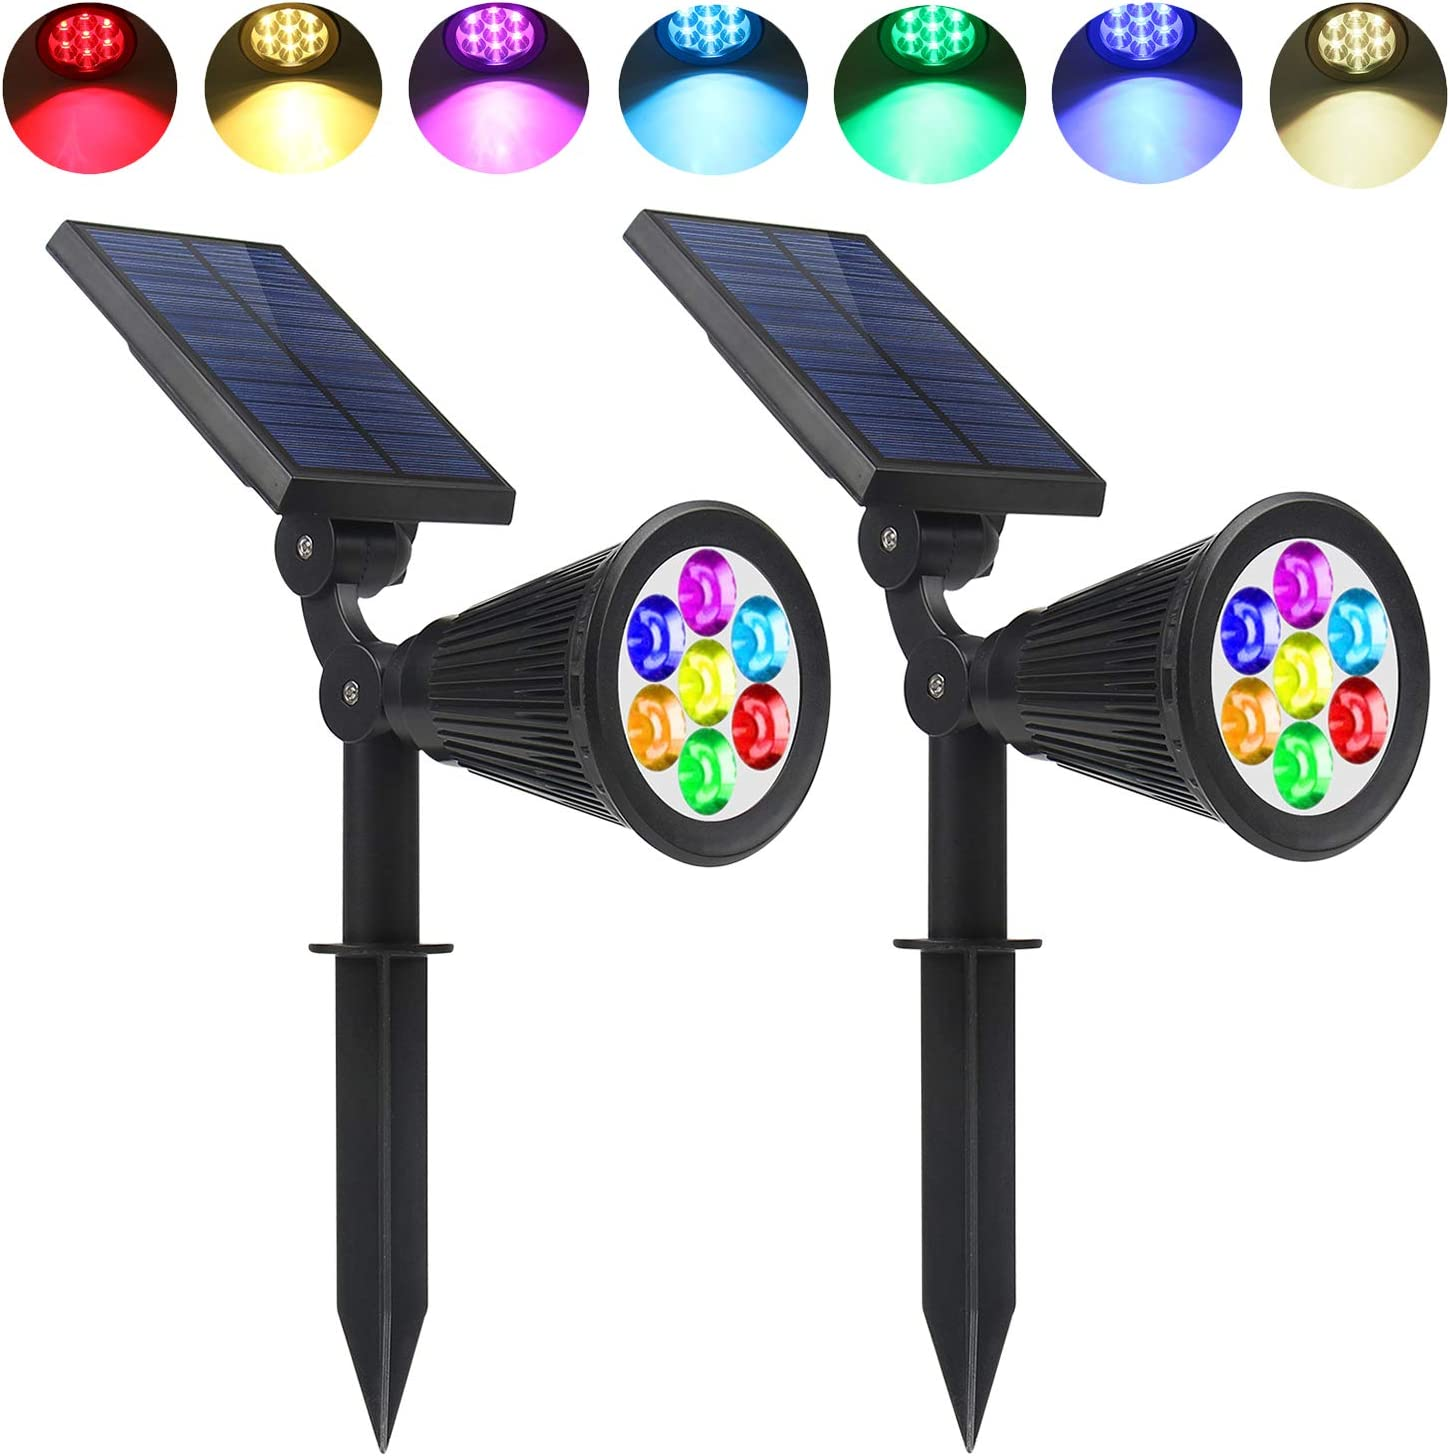 Lapeort Solar Lights Outdoor 2-in-1 Waterproof Solar Spotlights Colored 7 LED Adjustable Garden Wall Lighting Dusk to Dawn for Landscape Trees Yard Pathway Lawn Decor Auto On/Off (2-Pack): Home Improvement